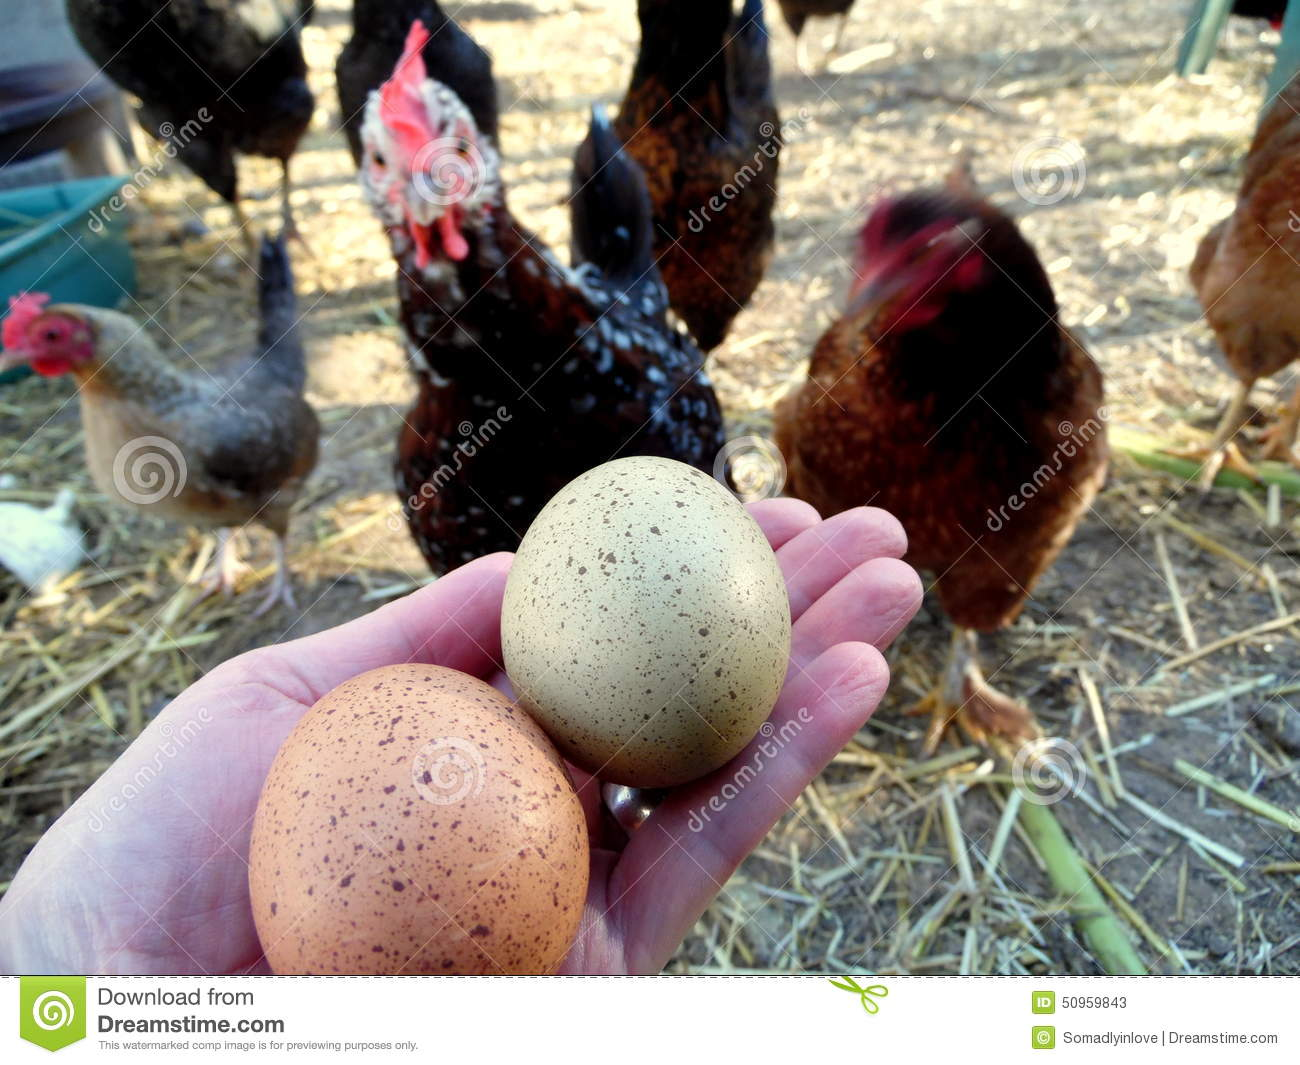 Photograph Of Speckled Eggs And Chickens Stock Image